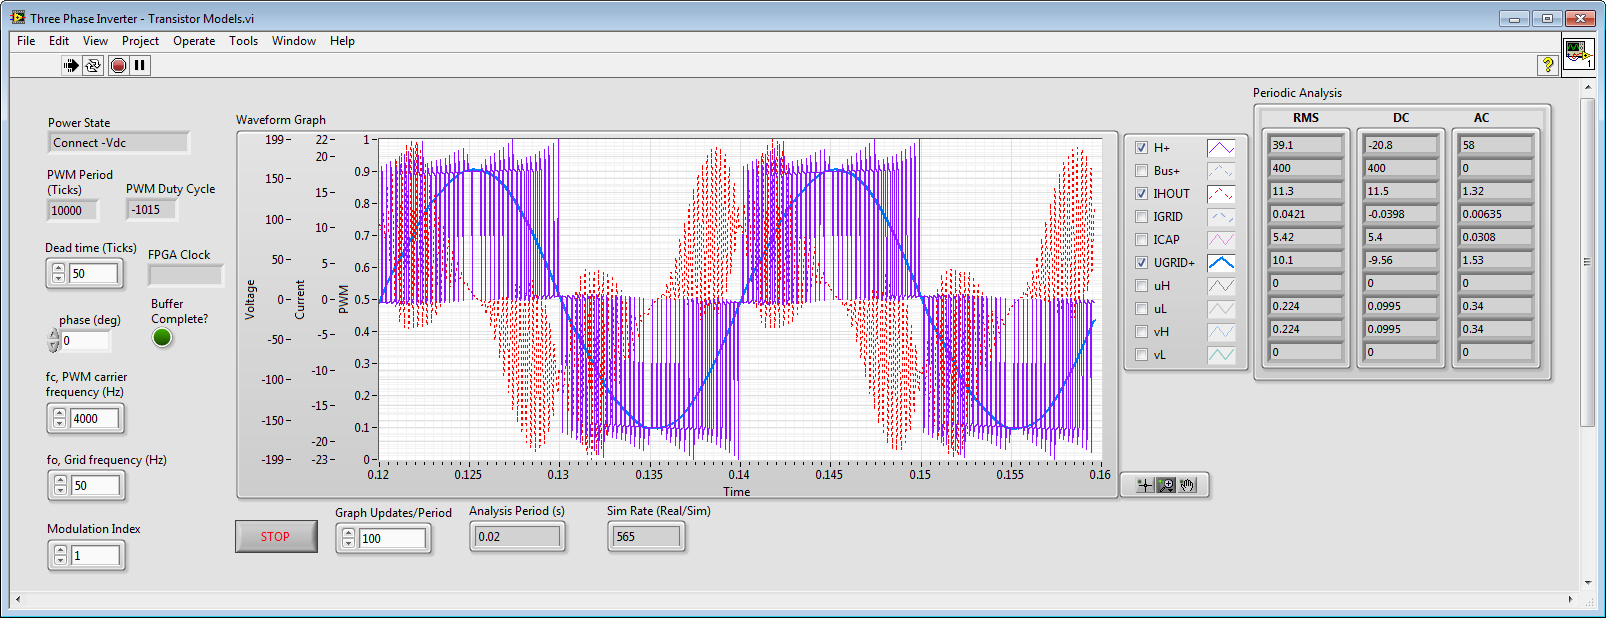 MOSFET_DIODE_THERMAL Simulation - FP.png